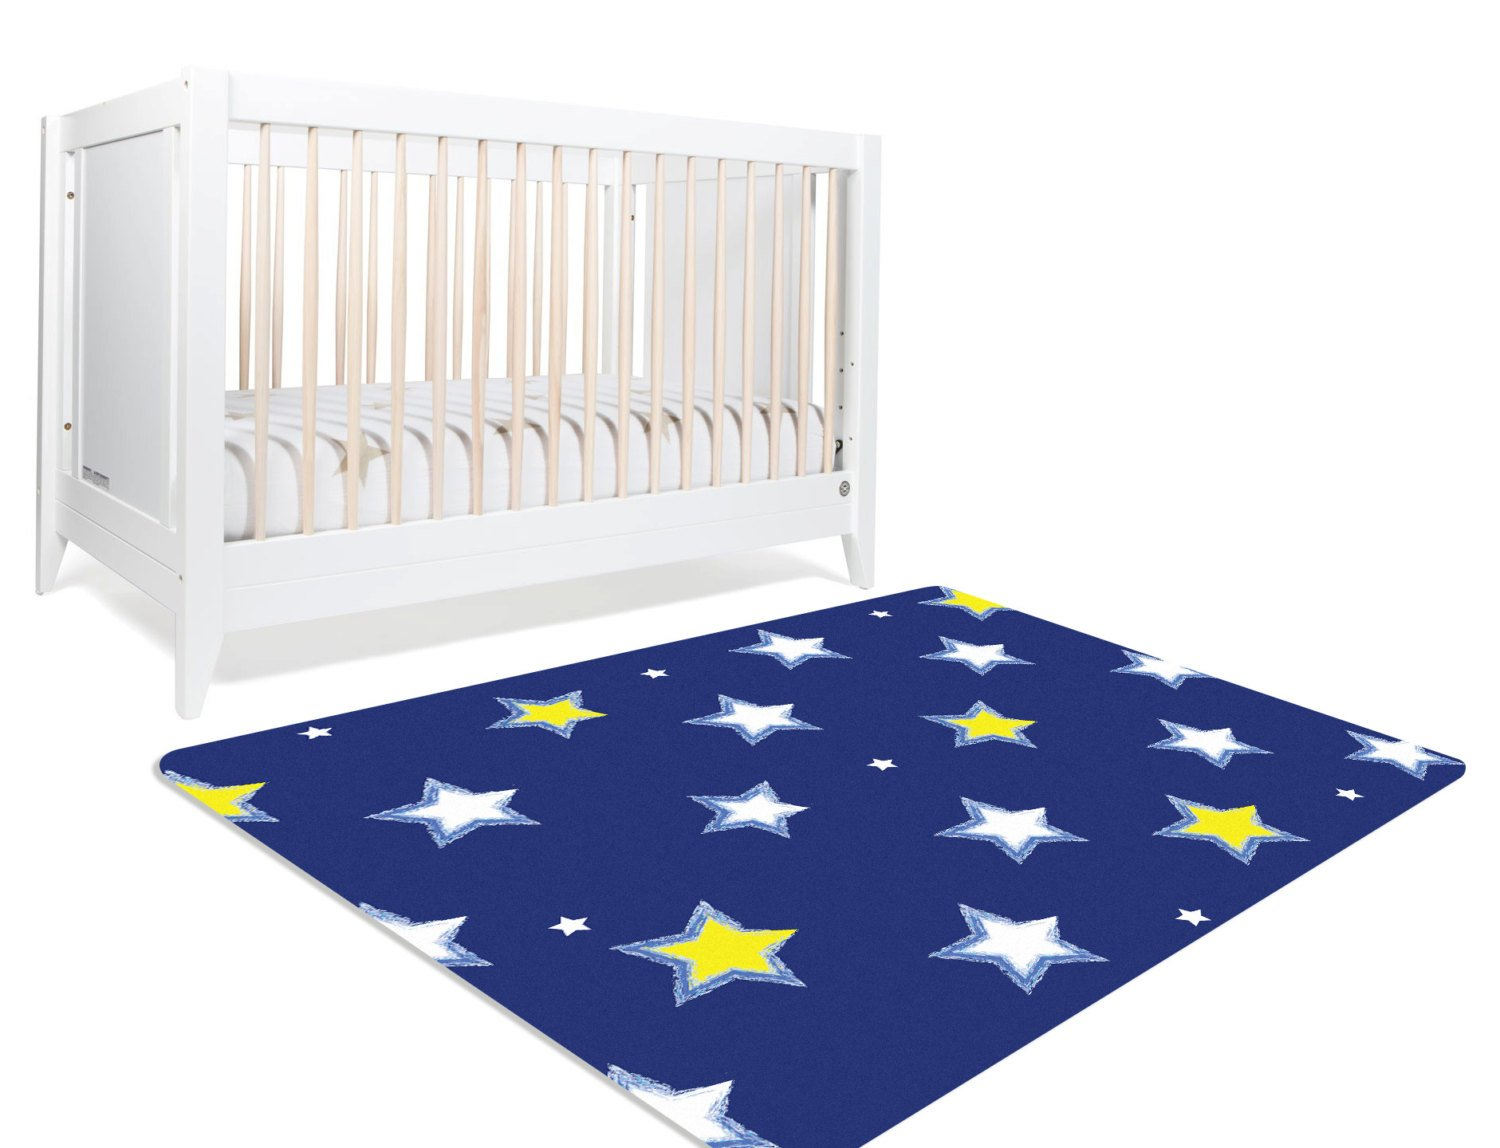 Star Nursery Decor - Navy Blue Nursery Decor - Boy Nursery Rug- Rugs For Nursery- Kids Room Rugs- Navy Blue Decor- Plush Rug- Christmas Rug